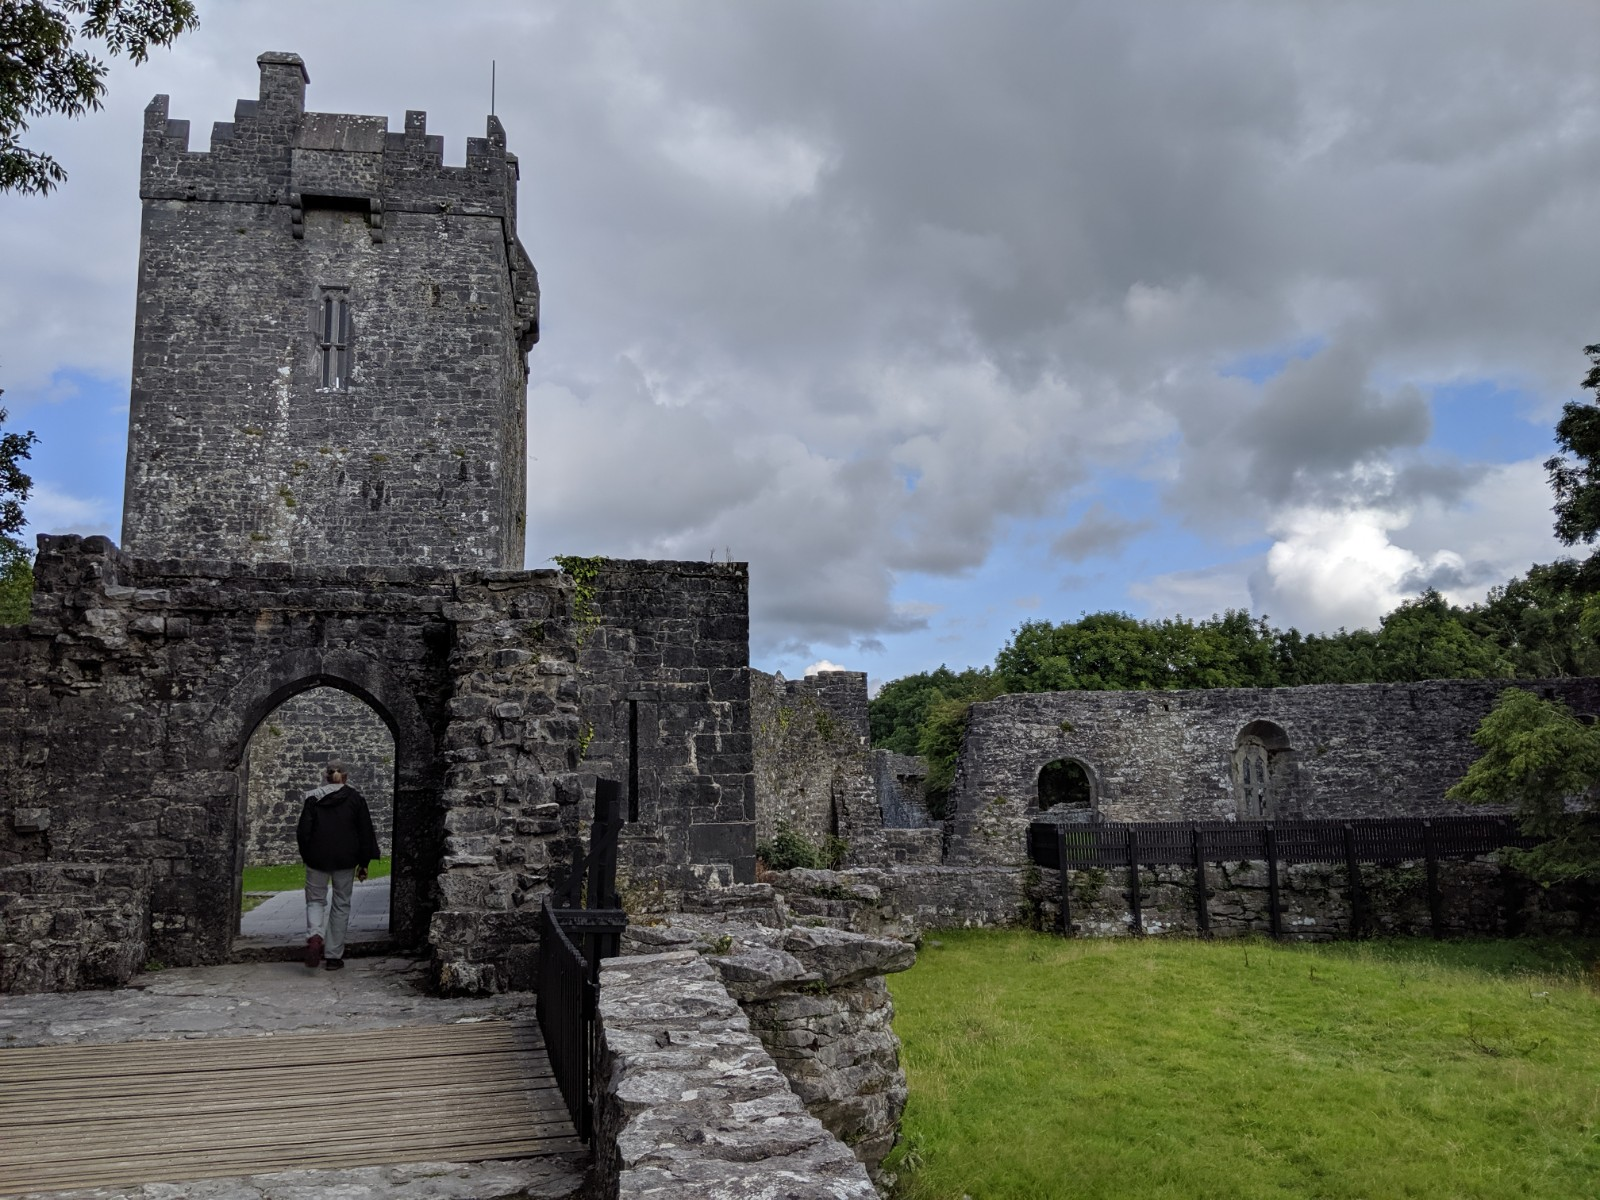 One of the castles we visited. Before the English conquered Ireland, the country was divided into areas controlled by clans. At the center of their area the leader of the clan usually built a castle for protection.